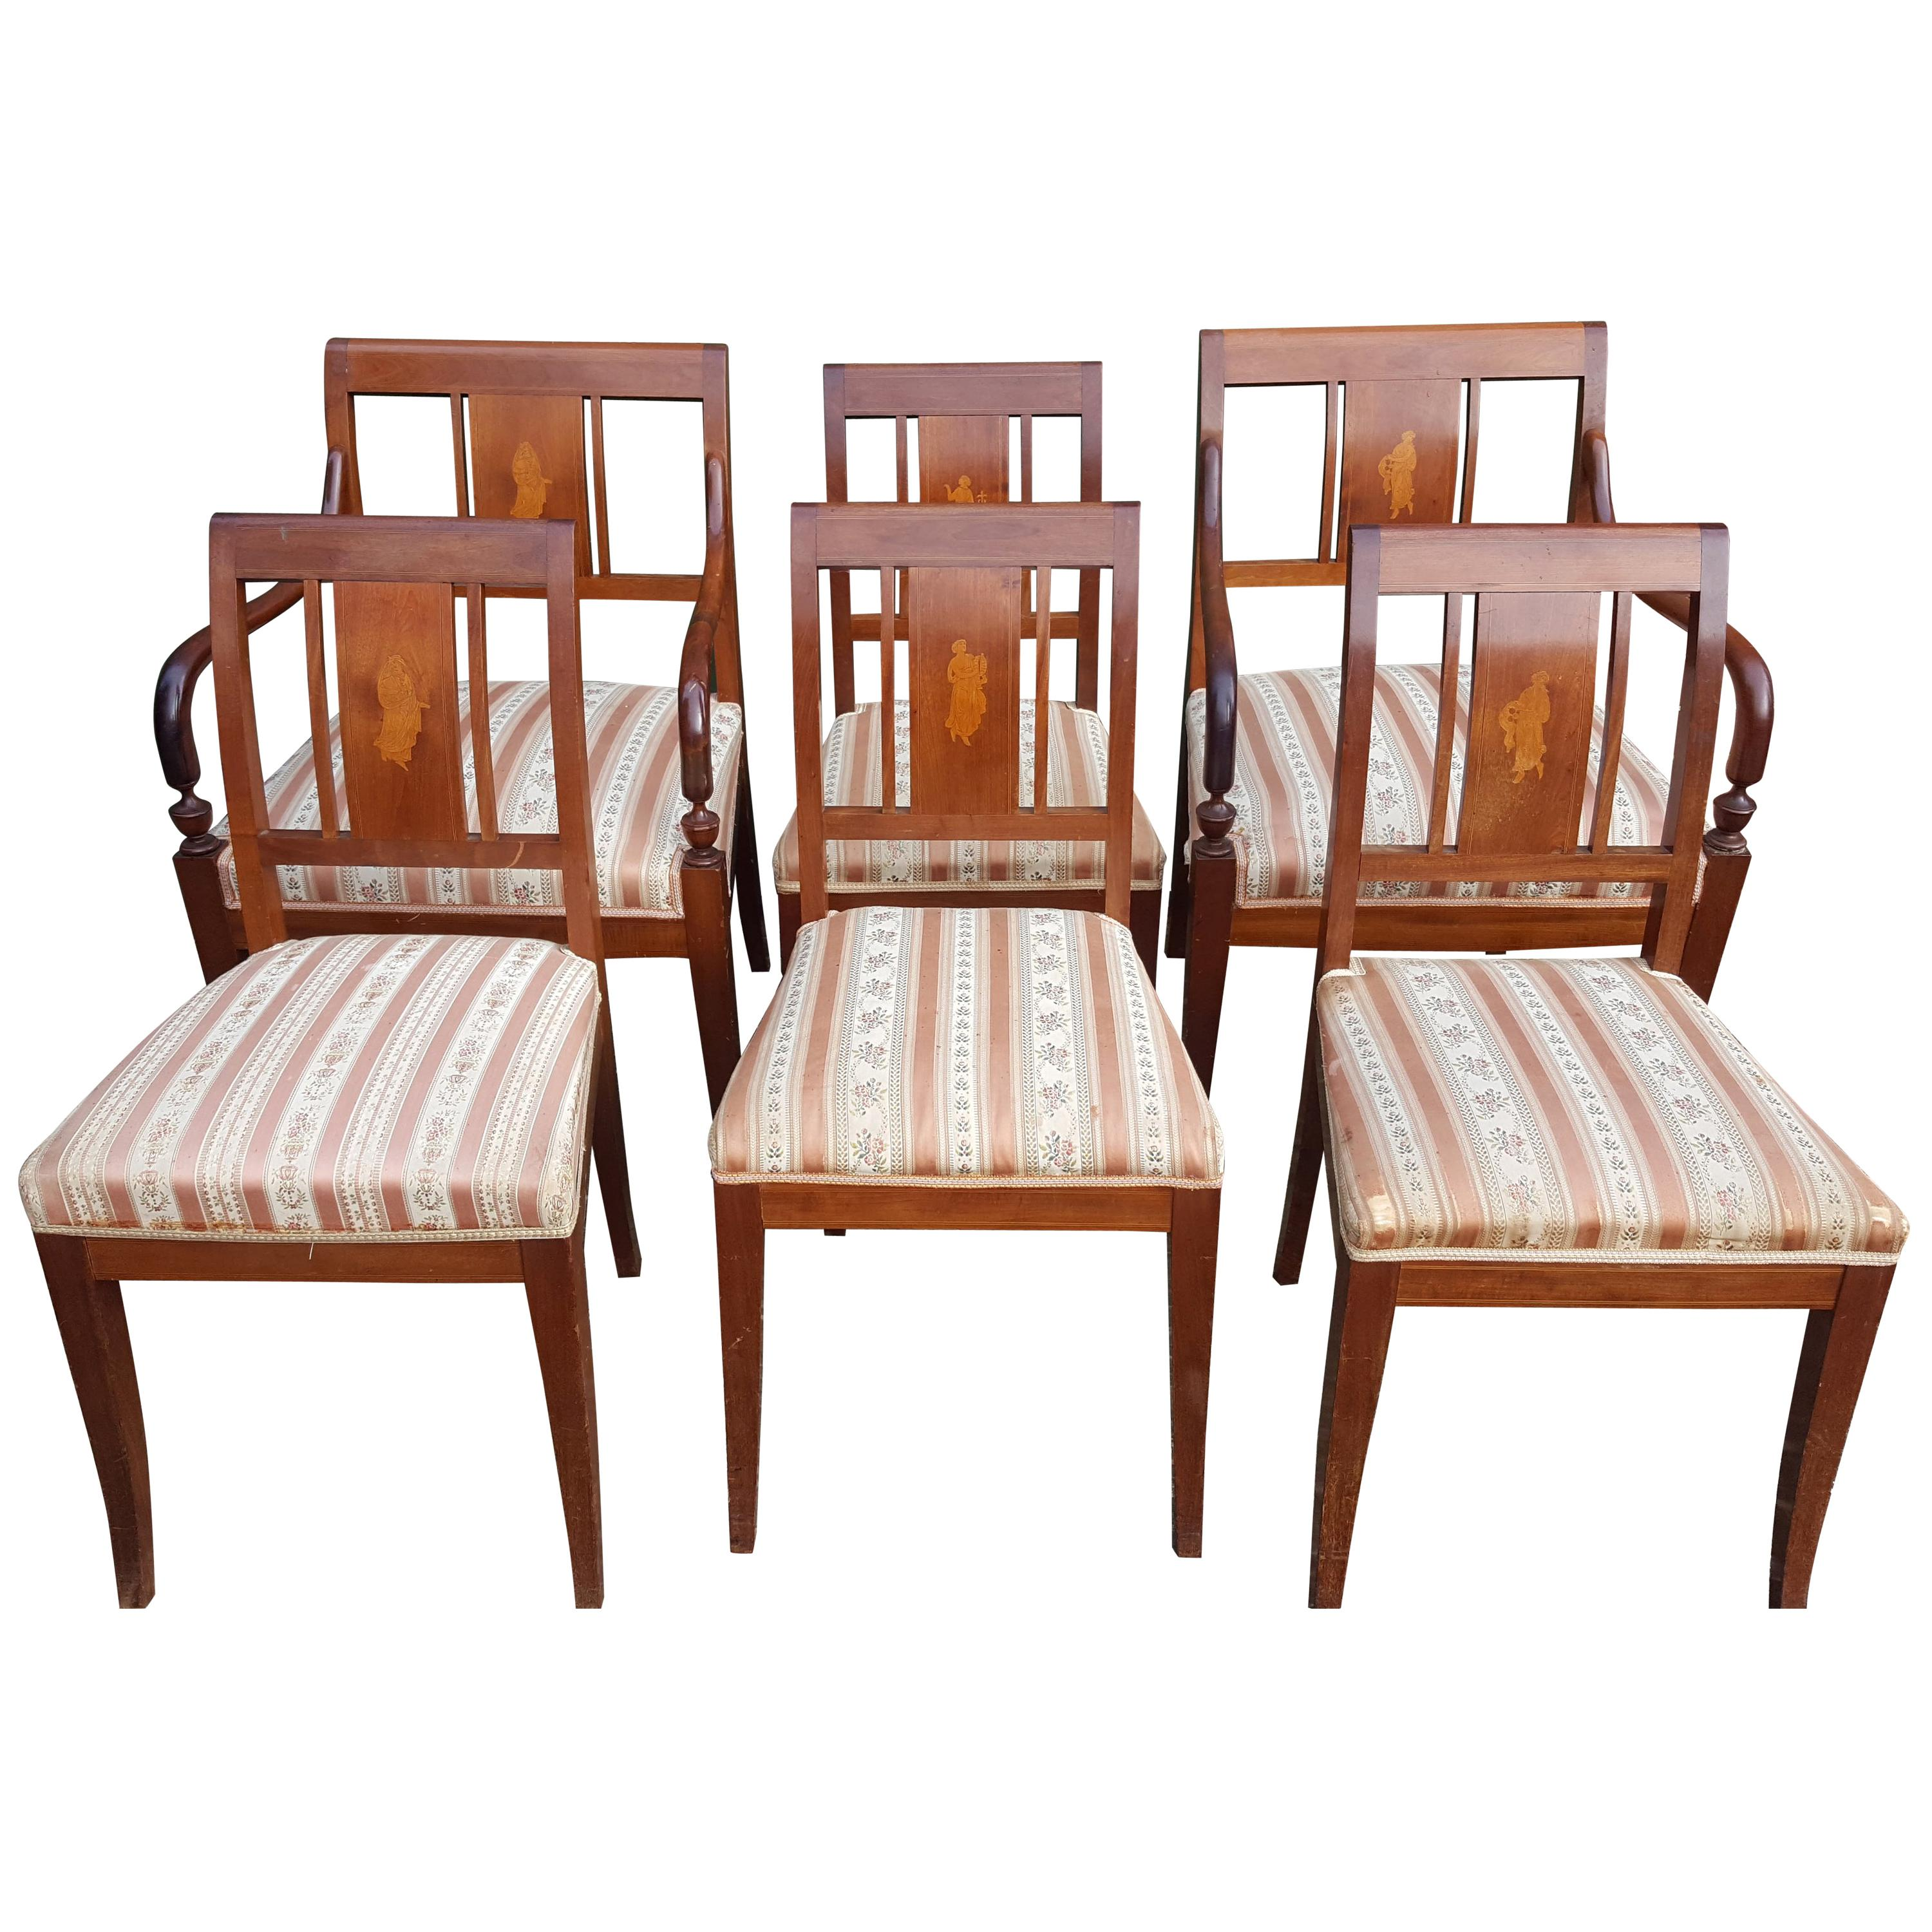 Art Deco Swedish Dining Chairs Set of 6 Marquetry Dark Honey, Early 20th Century